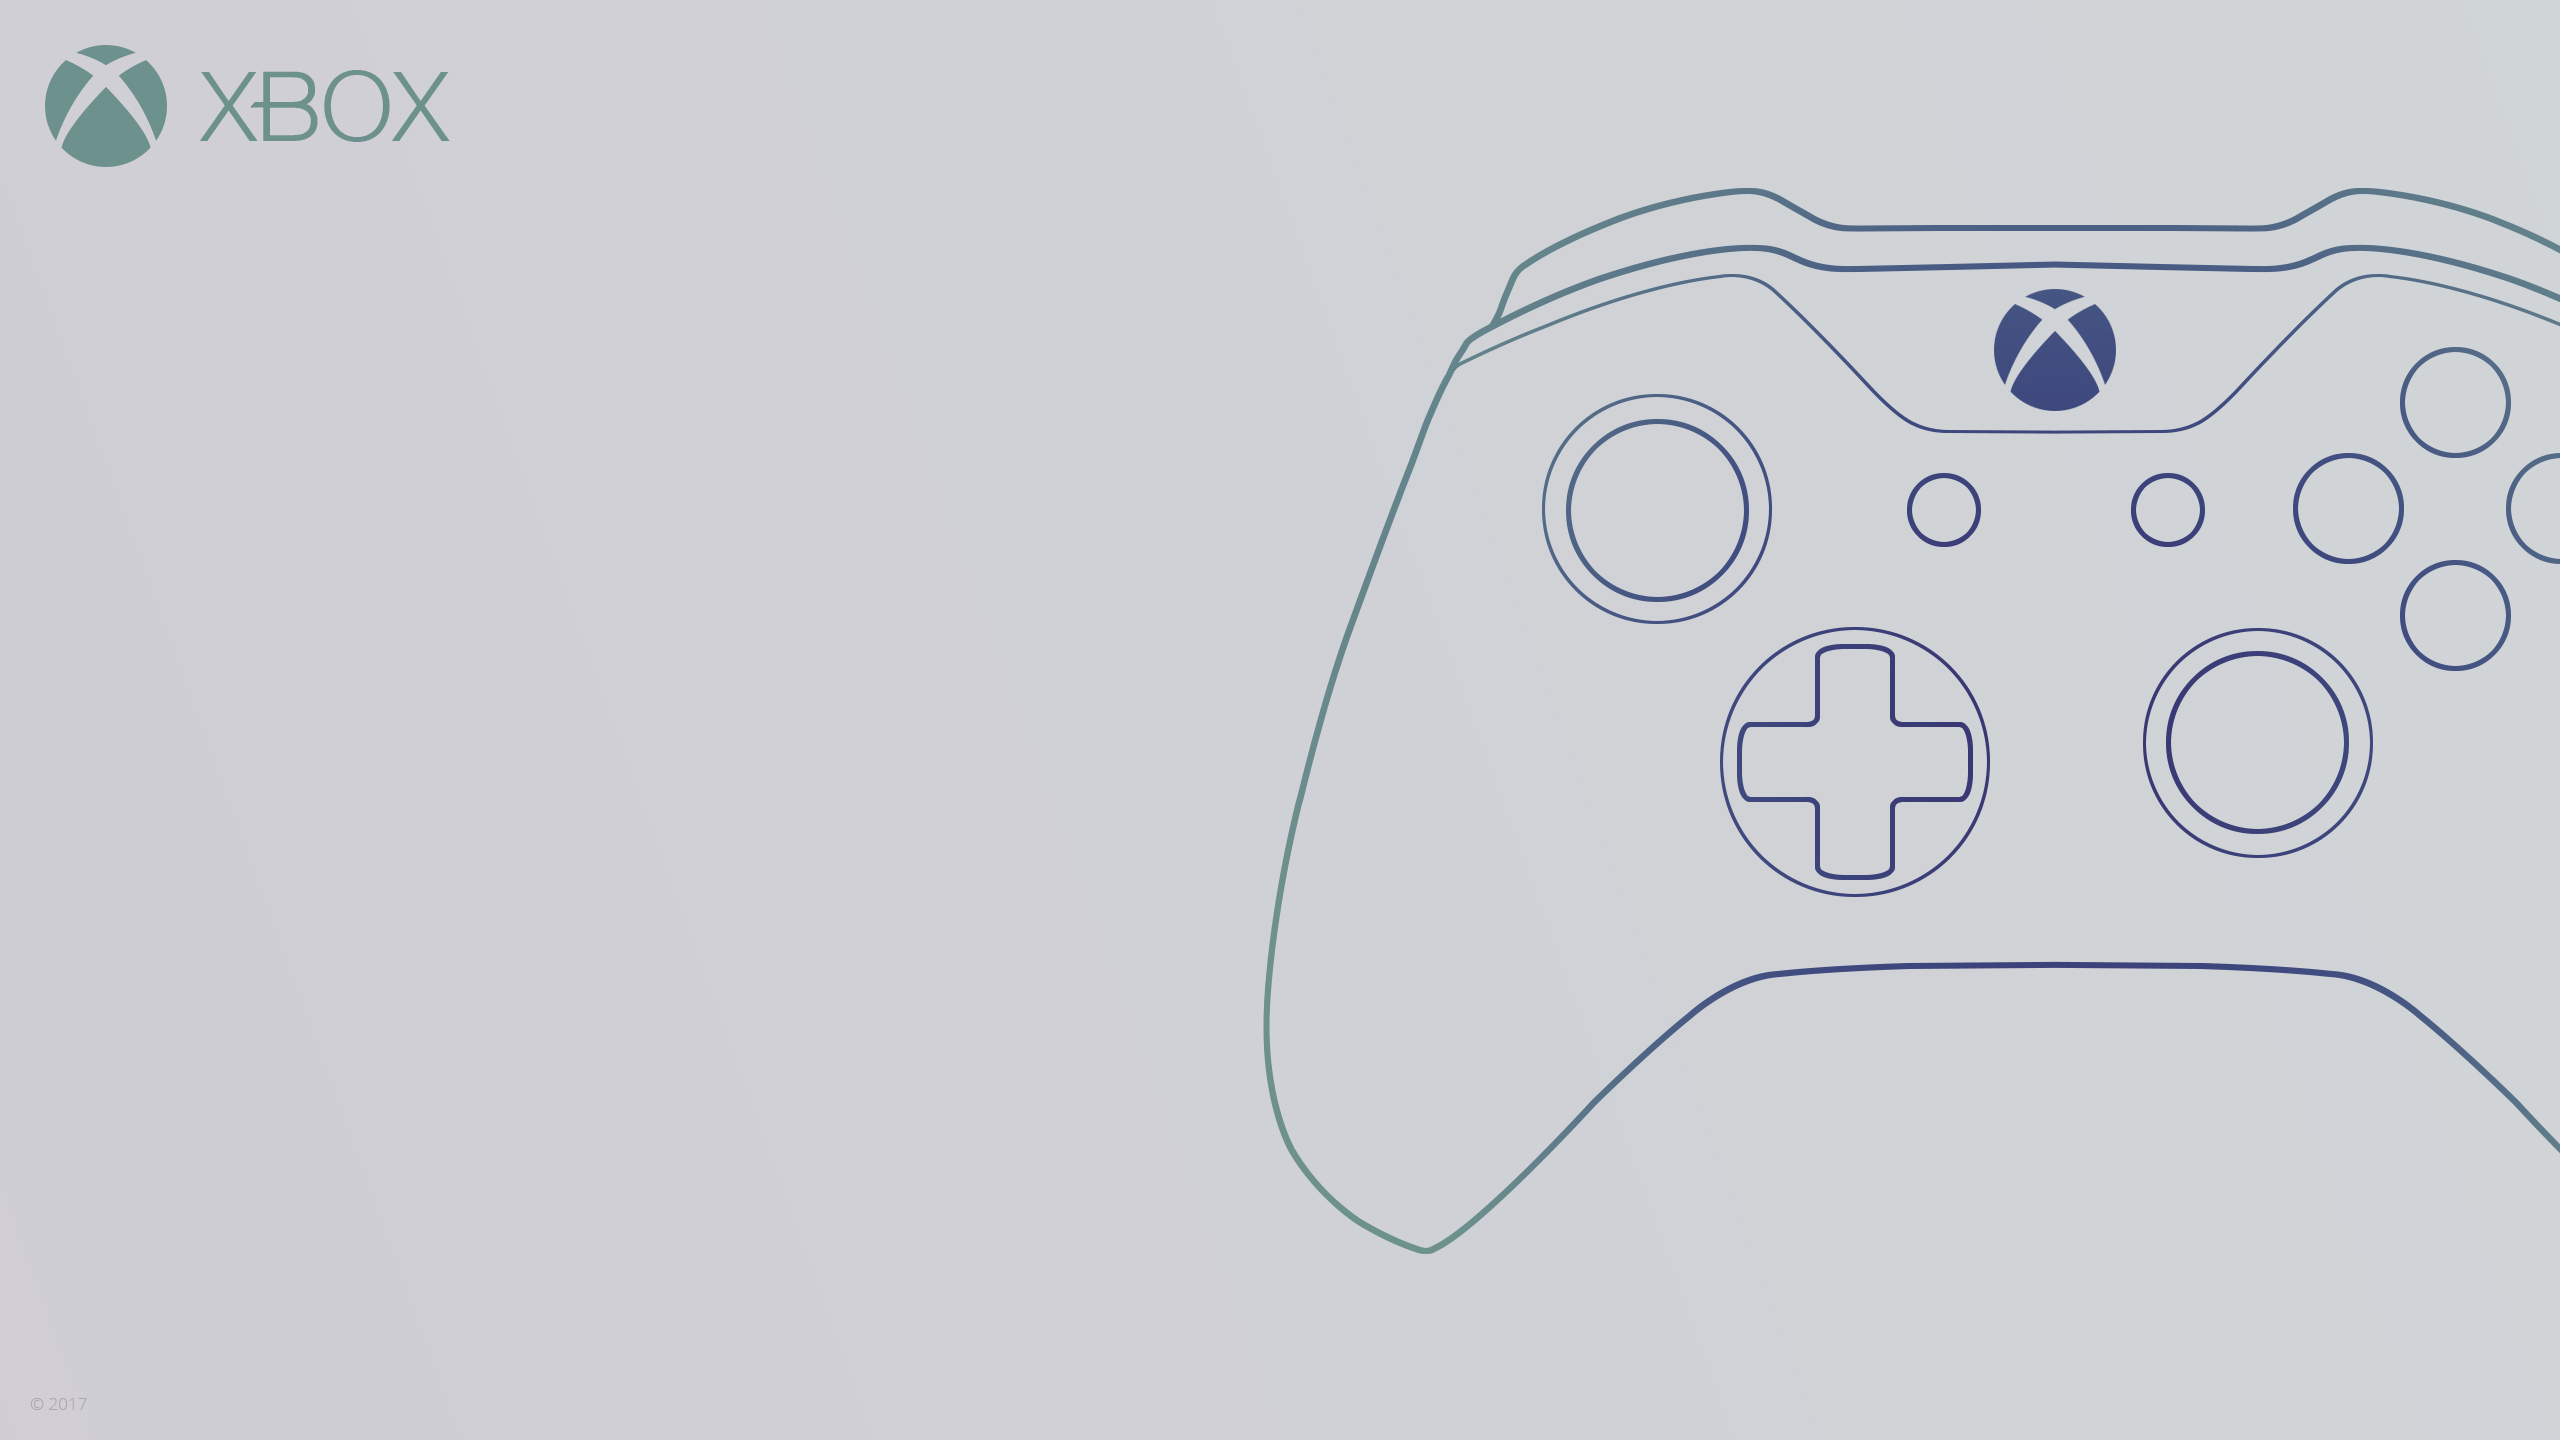 Line Drawing Xbox Controller : Xbox controller wallpaper by ljdesigner on deviantart